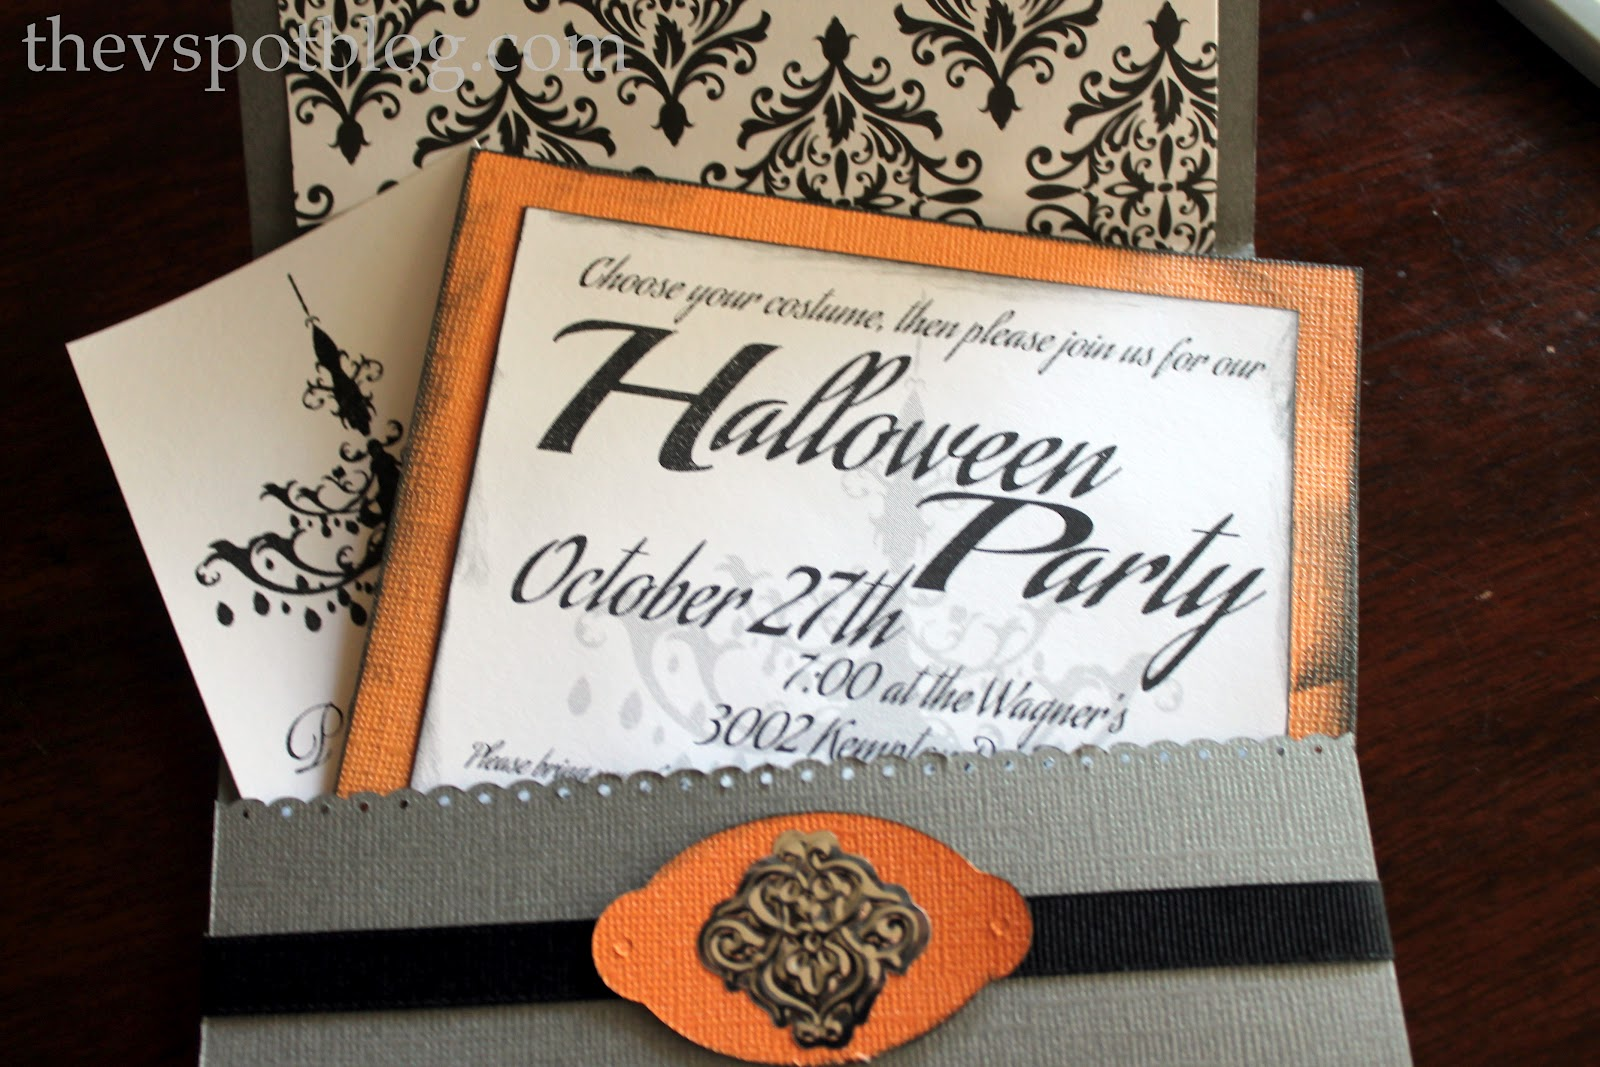 diy halloween party invitations for the non scrapbooking non paper crafting types out there - Homemade Halloween Party Invitations